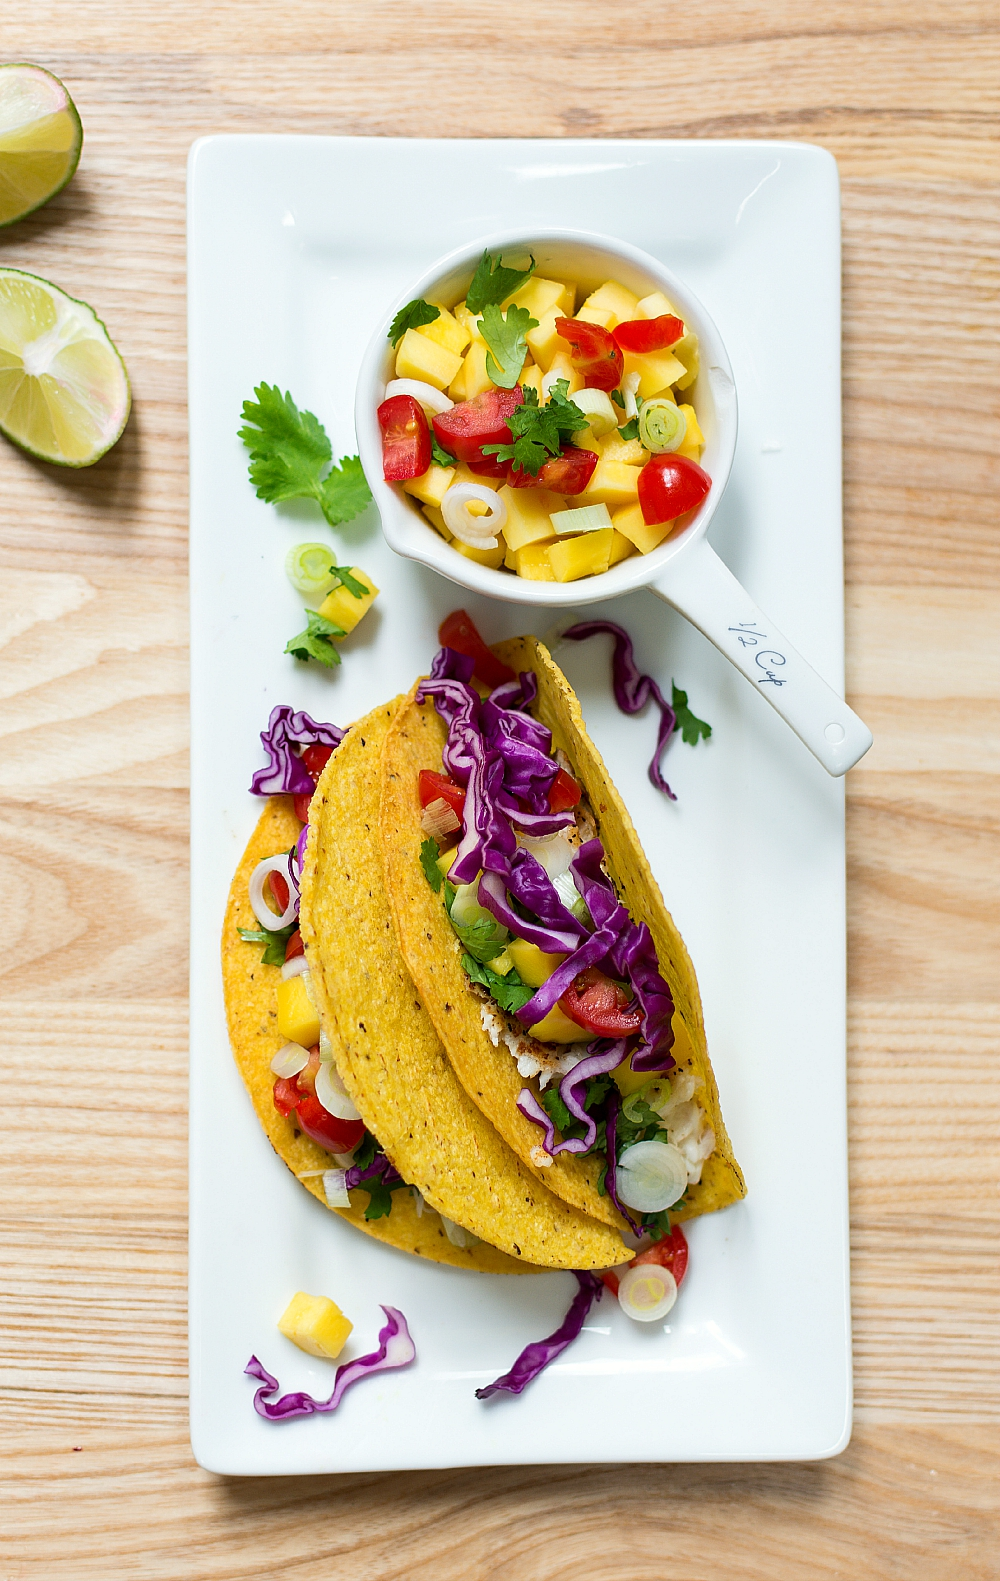 fish-tacos-weight-watchers (11 of 17)